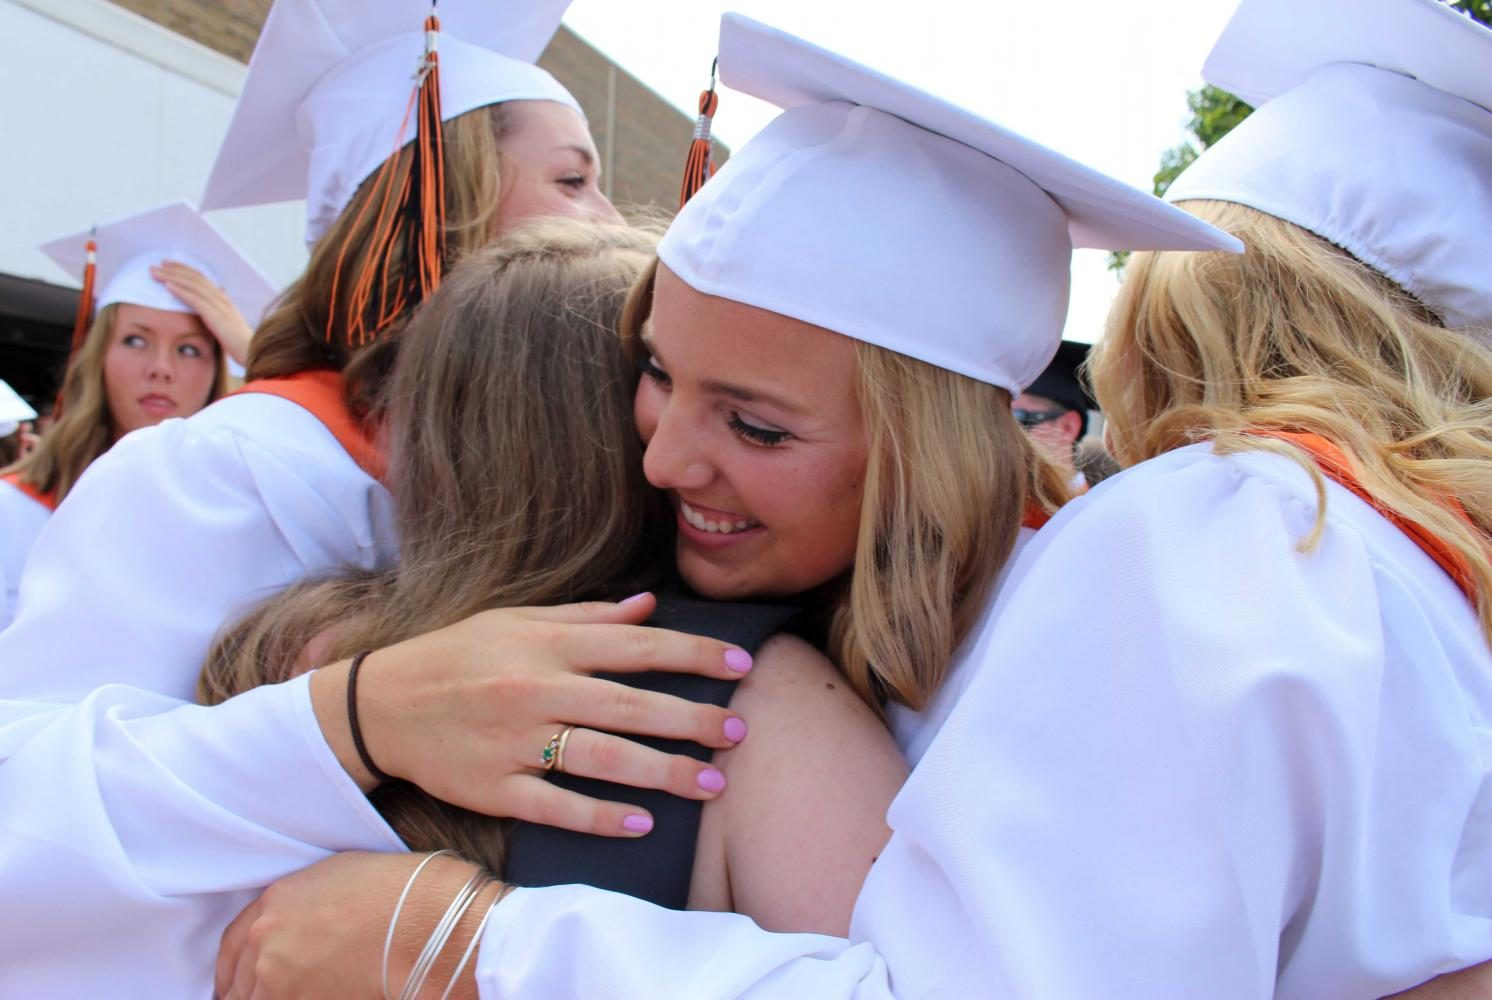 After the graduation ceremony is completed, junior, Maya Mead gets wrapped in a hug from her friend, senior, Lauren Gruber. Although it was 95 degrees out, it didn't stop Mead from saying goodbye and supporting her senior friends.